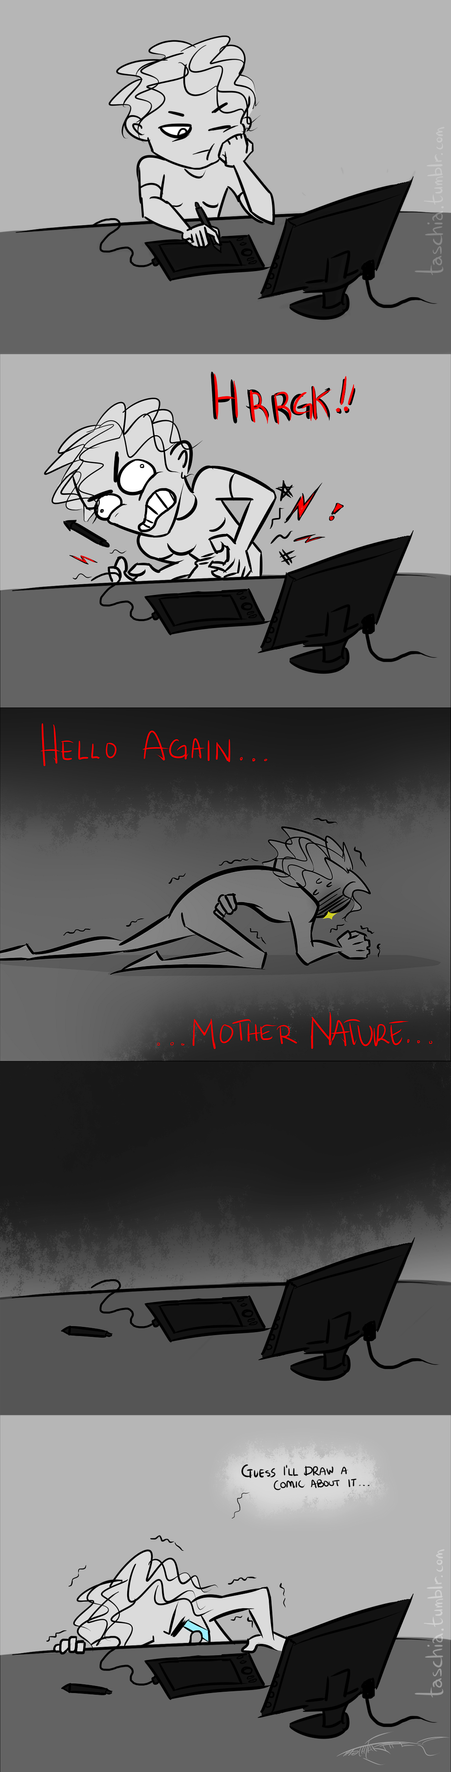 Hello Mother Nature My Old Friend by Tasch-Draws